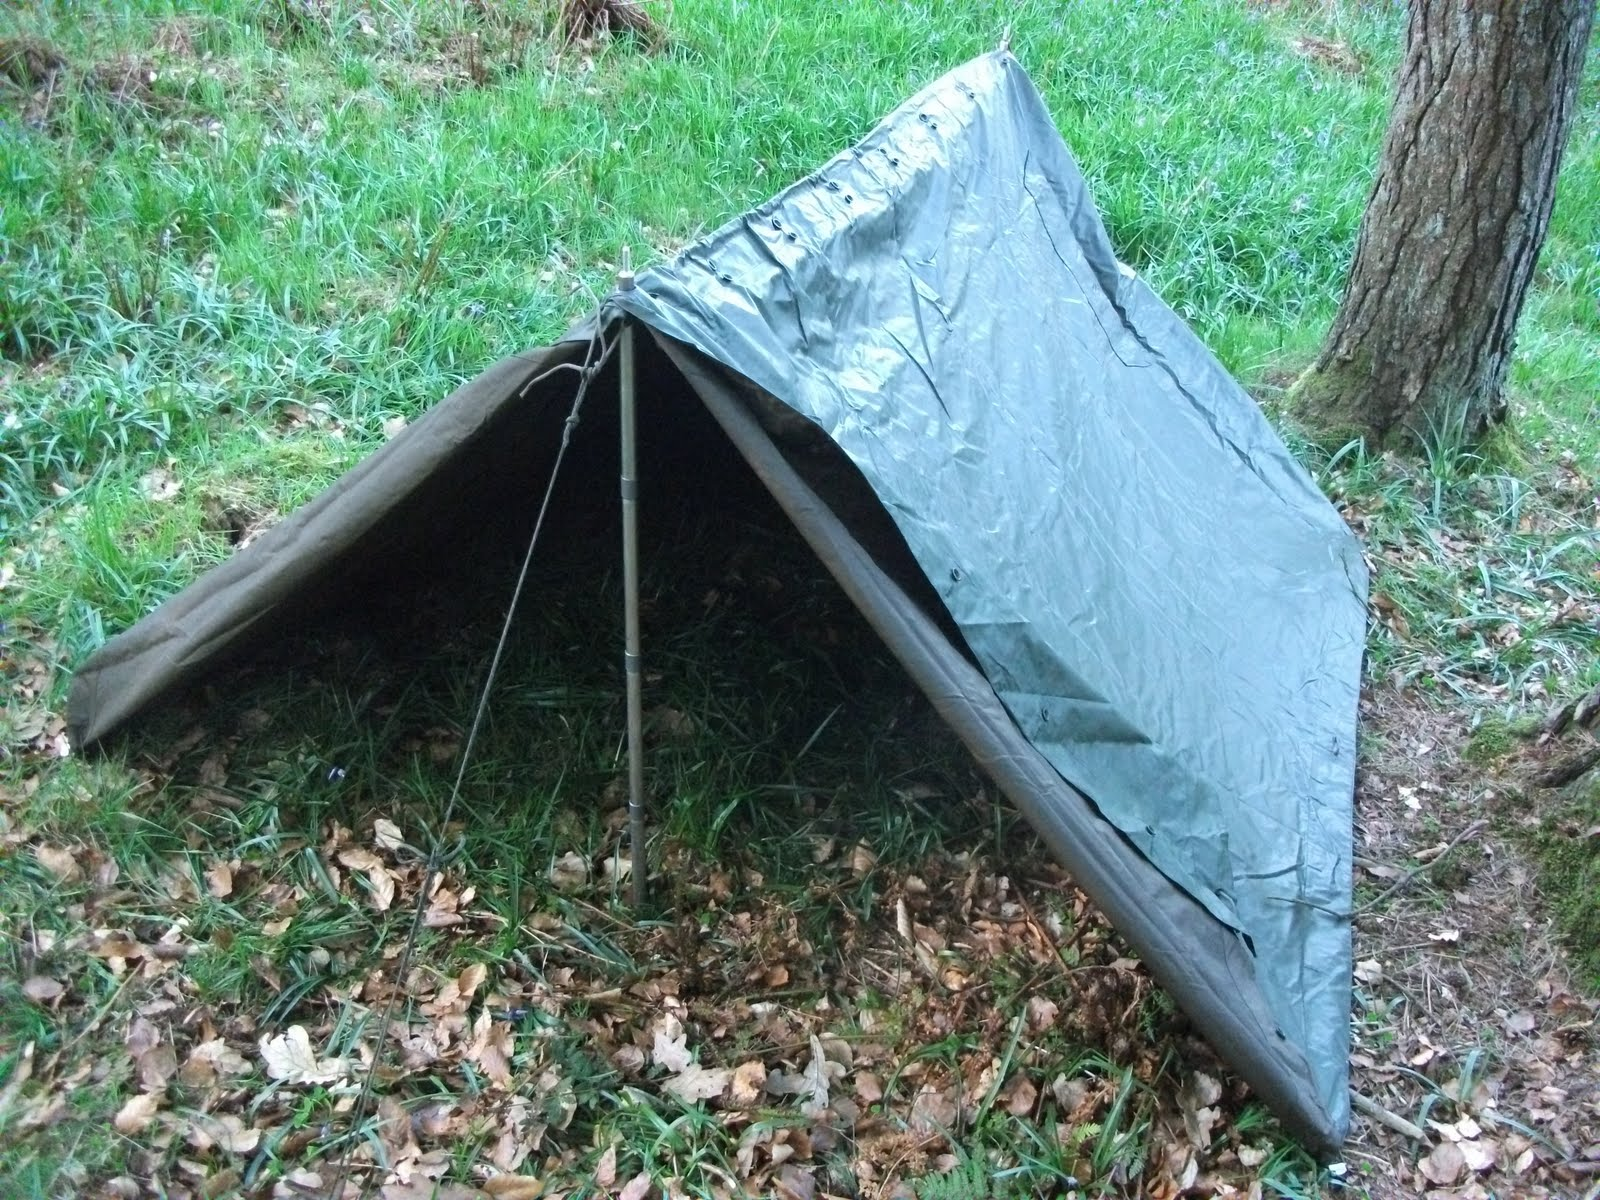 Wilderness Living Belgian Army Pup Tent